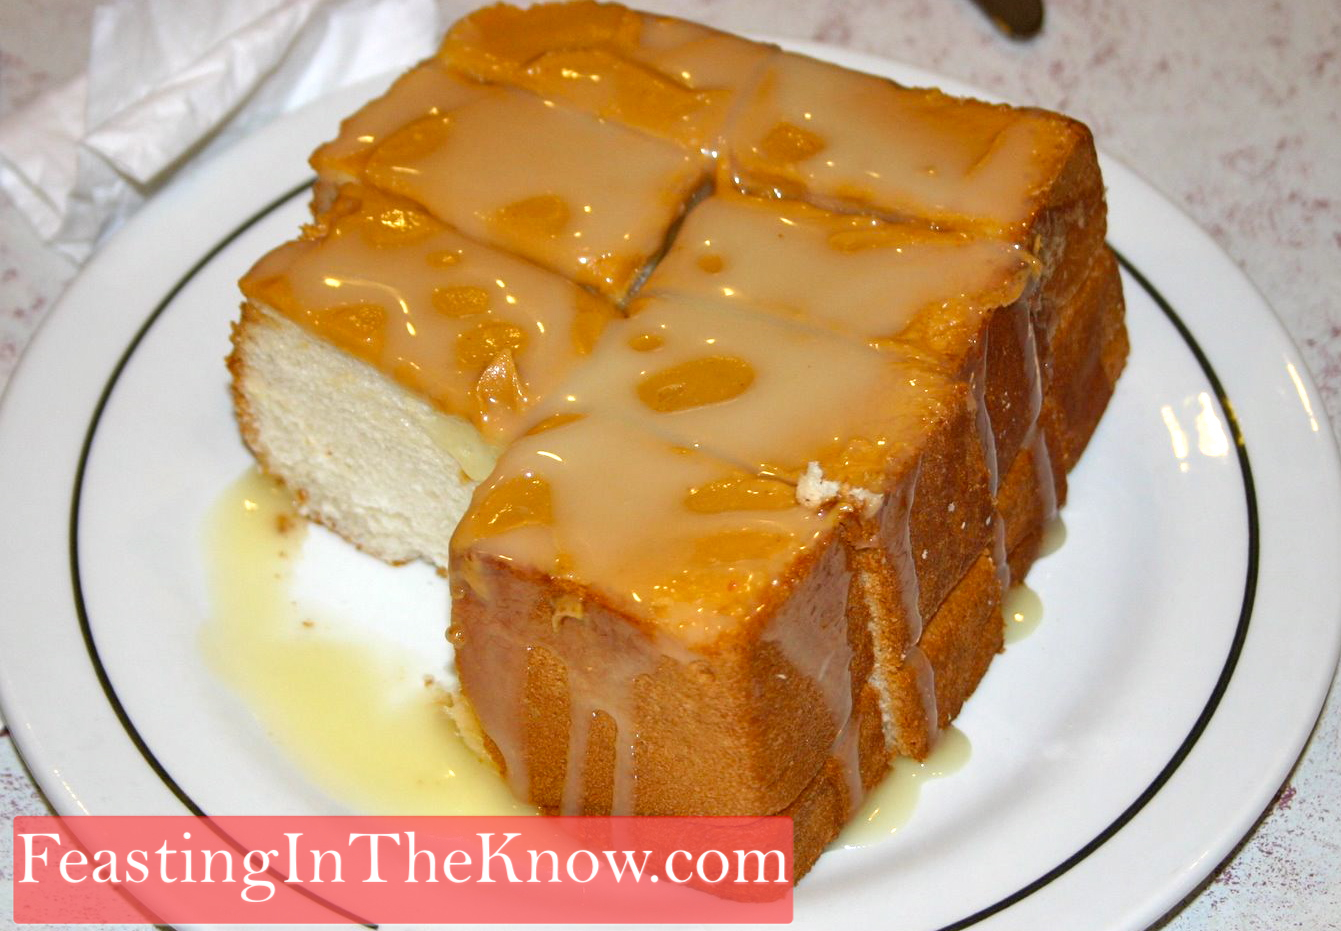 Condensed Milk Toast Feasting In The Know